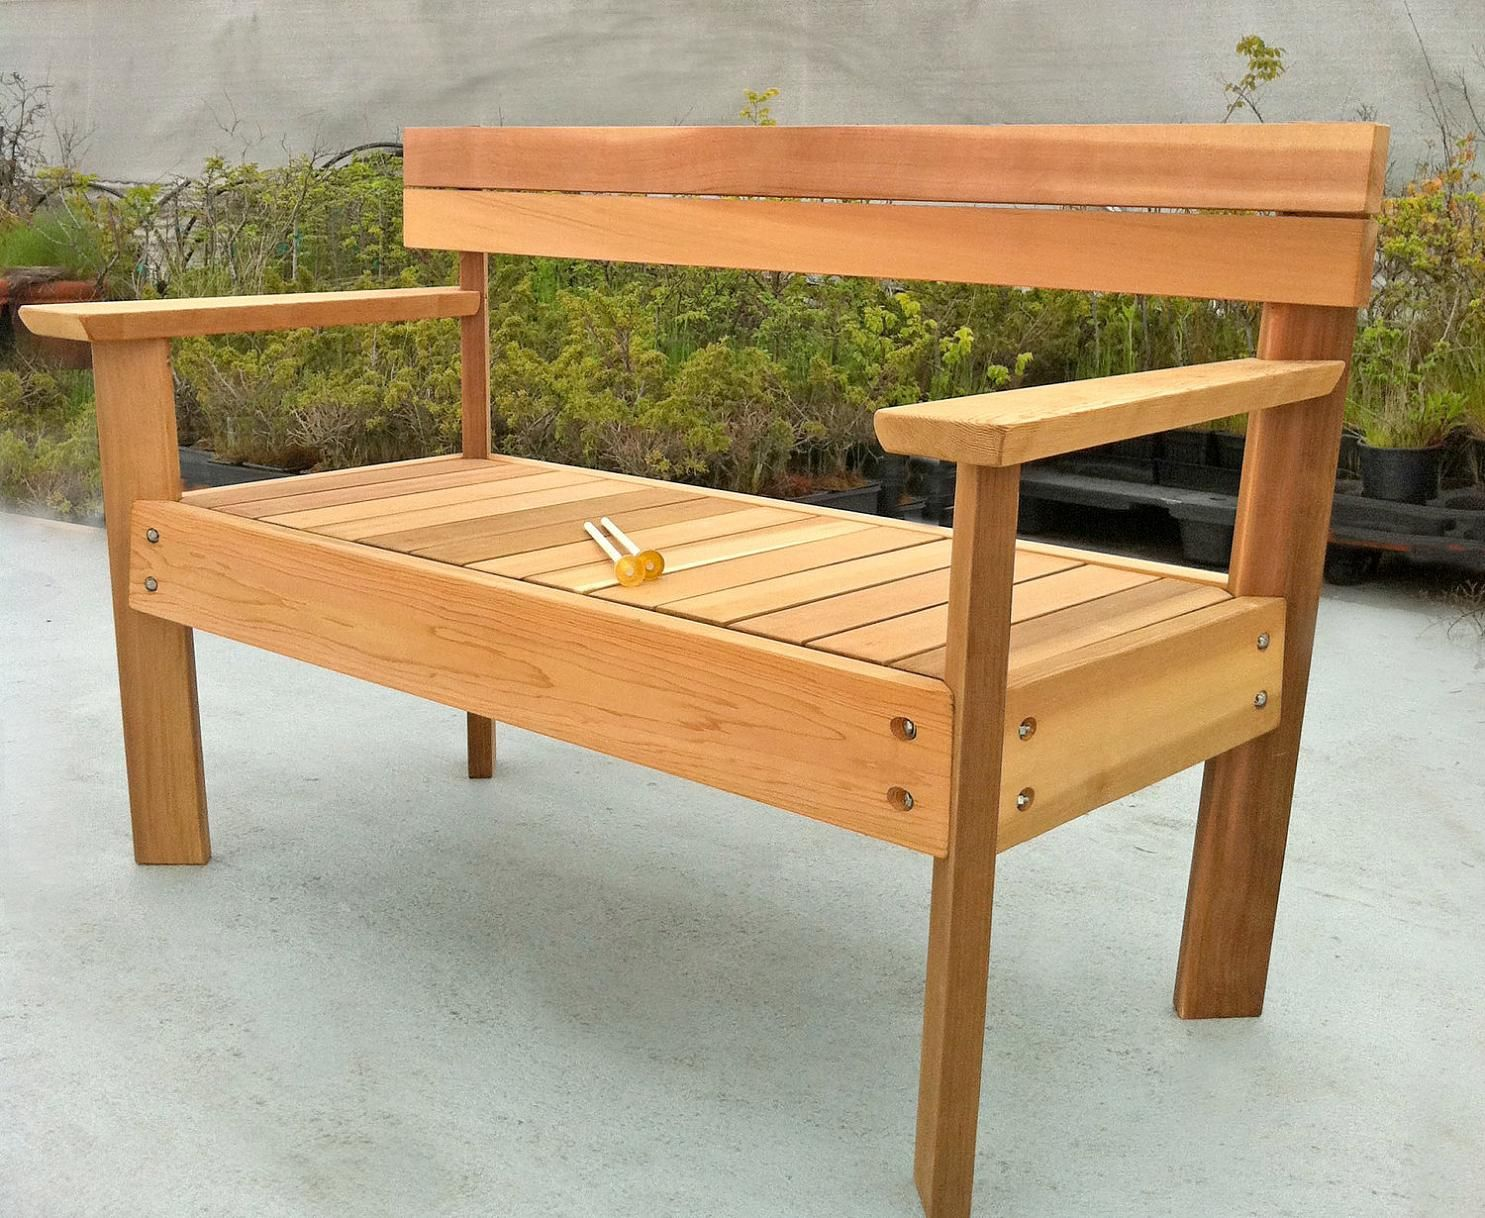 bench for outdoors, reclaimed wood outdoor bench outdoor wood